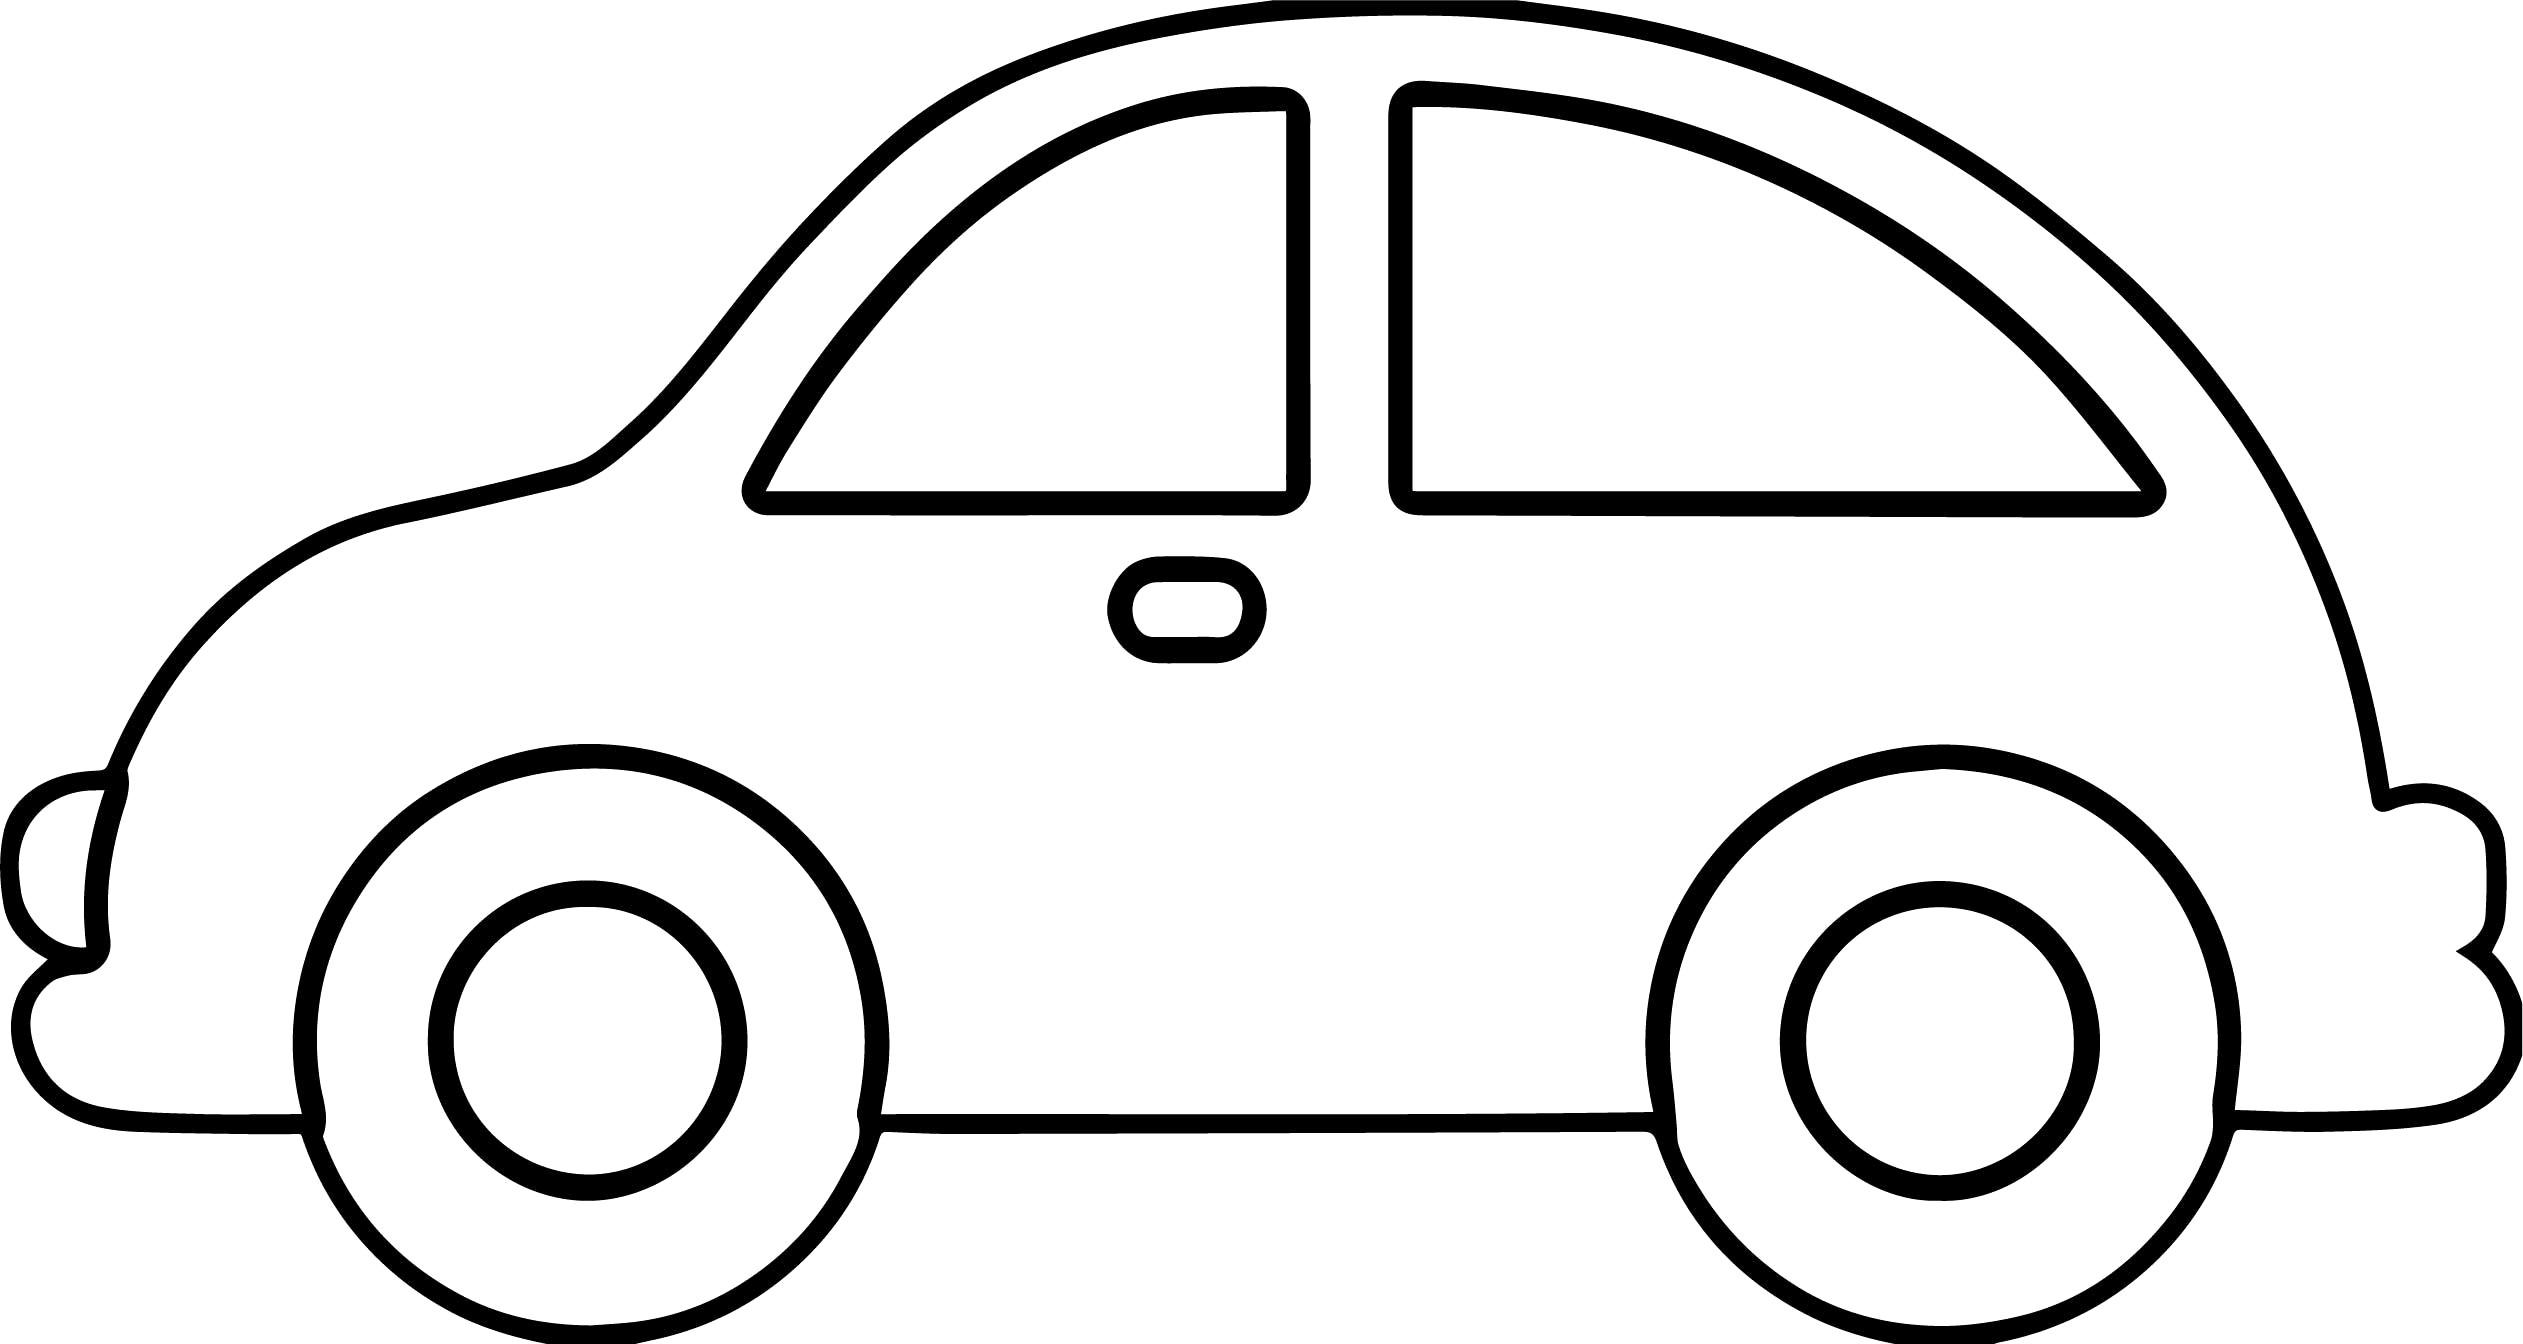 2523x1344 Car Images Outline Best Of Vehicle Outline Drawing